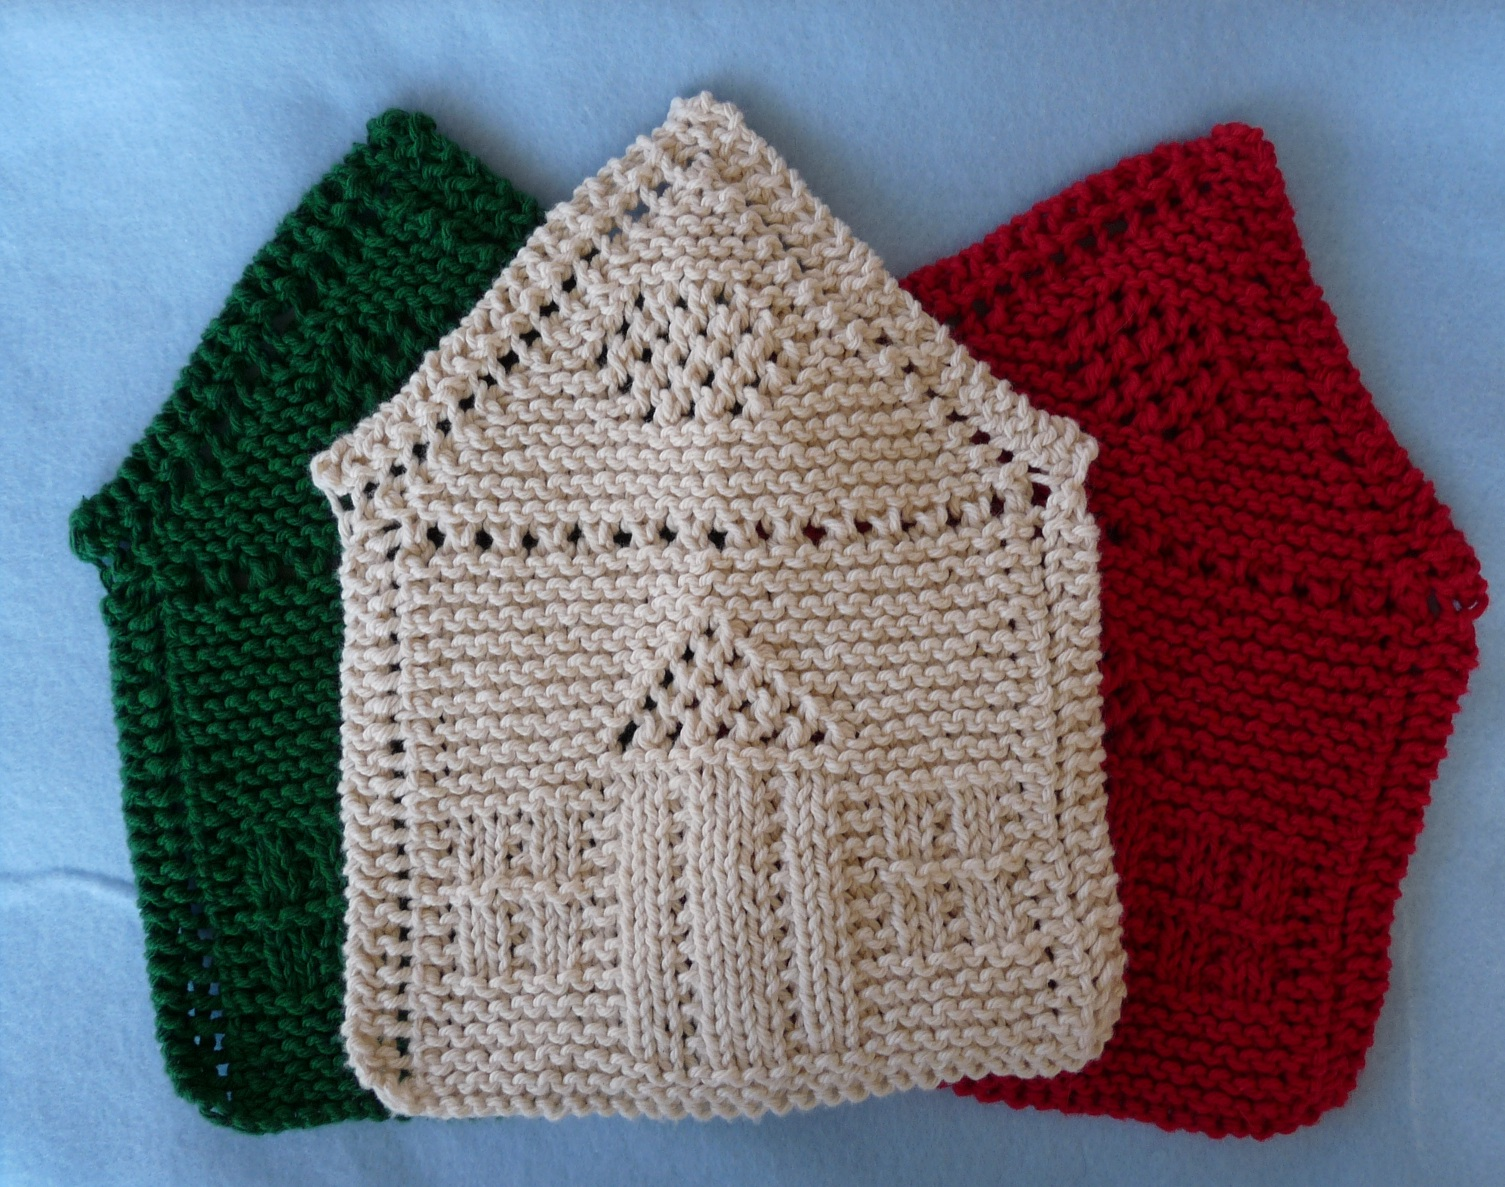 Free Knitting Patterns Christmas Dishcloth : Whiskers & Wool: January 2012